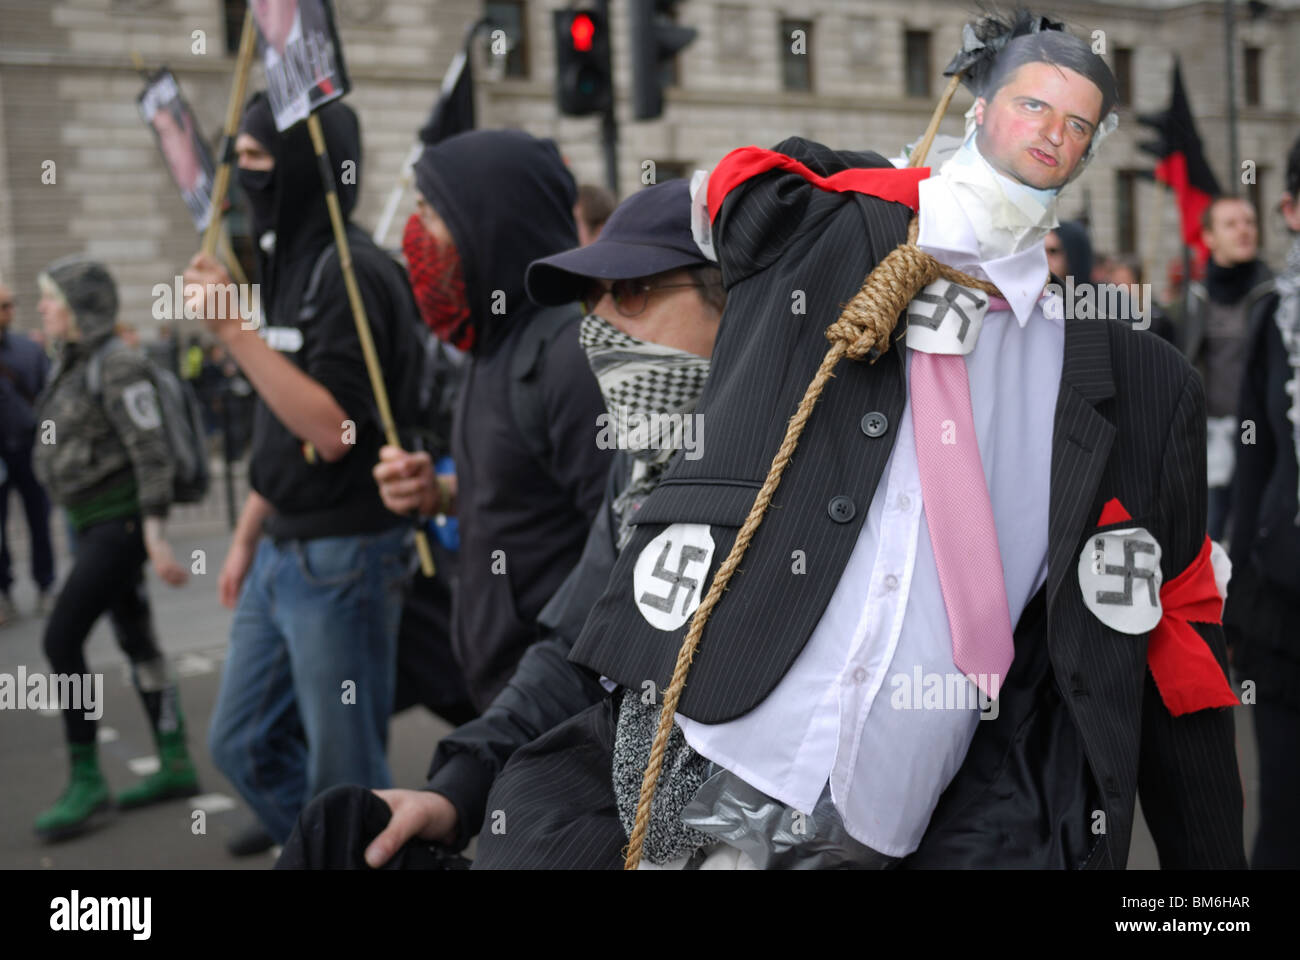 The effigy of BNP leader Nick Grriffin is dfragged through London to be hung on Parliament Square. - Stock Image